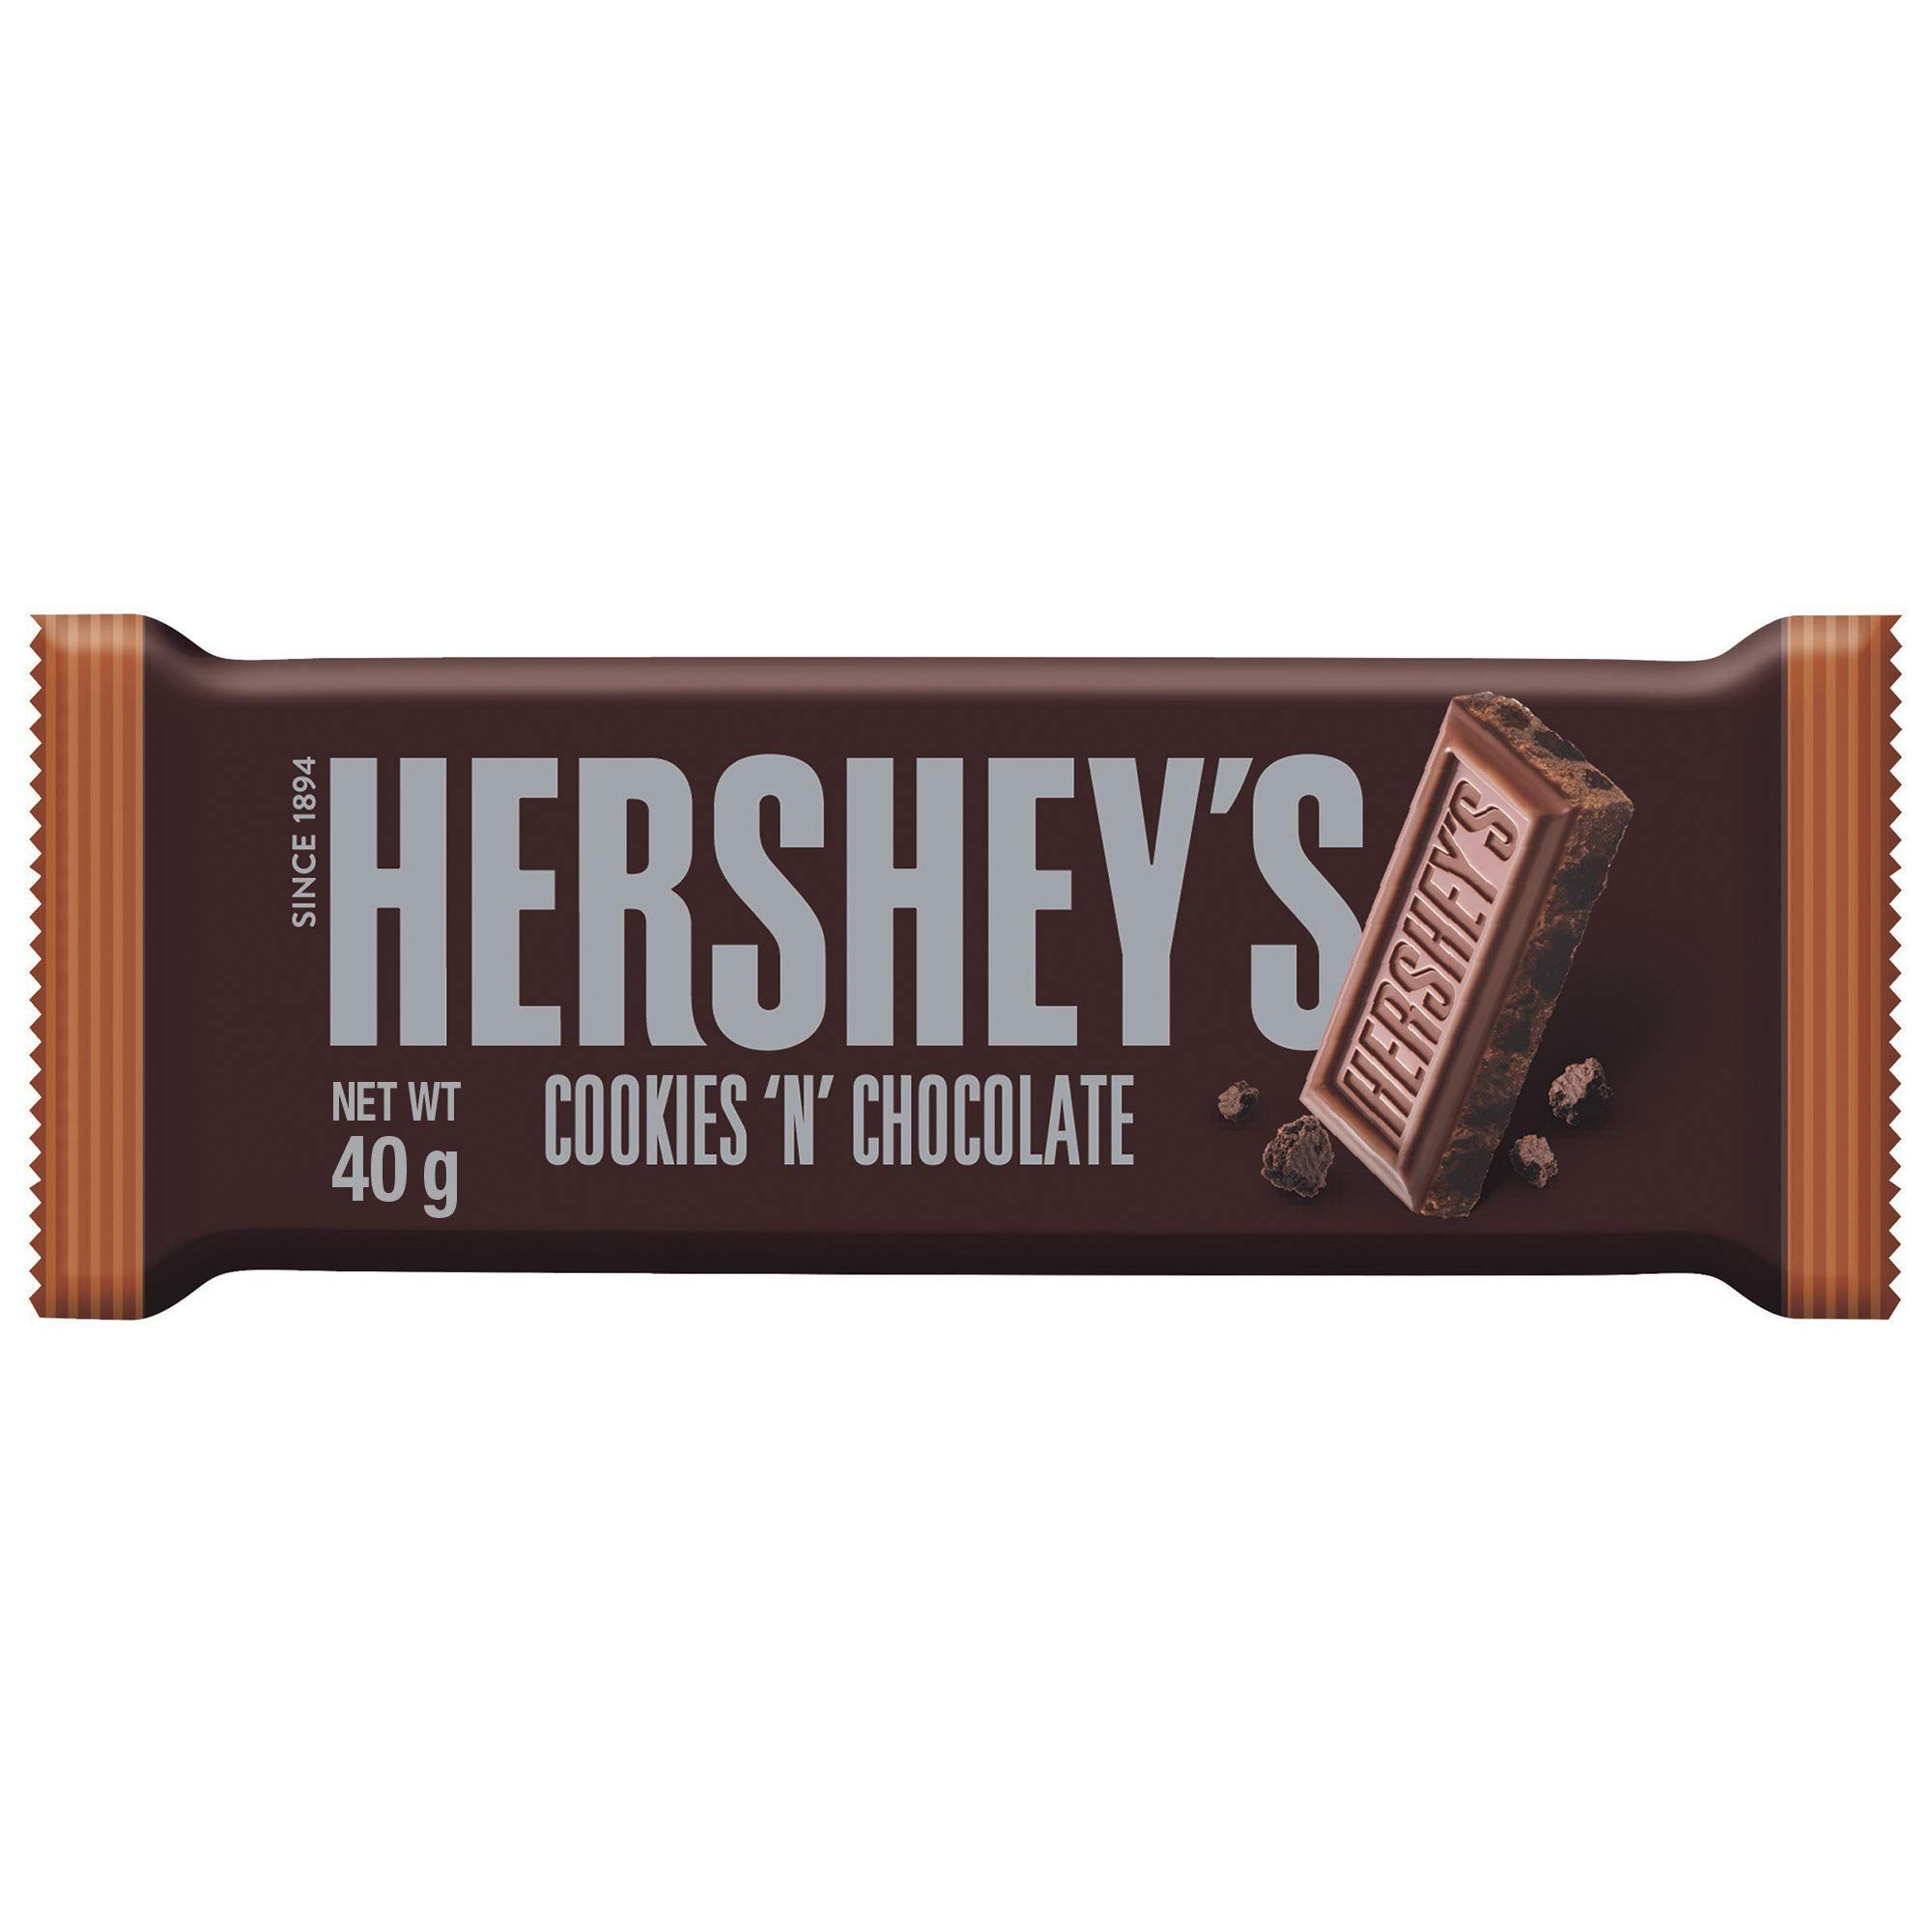 Hershey's Cookies 'n' Chocolate Bar, Chocolate Flavour with Cookie Pieces, 40 g                Hershey's Kisses with Almond, 150g                Iconic American Chocolates Selection Box Full Size Bars Best Hersheys Chocolate Gift for Any Occasion                Hershey's Chocolate Syrup 680g                Hershey's Miniatures Assortment, 56-Ounce Bag (Original Version)